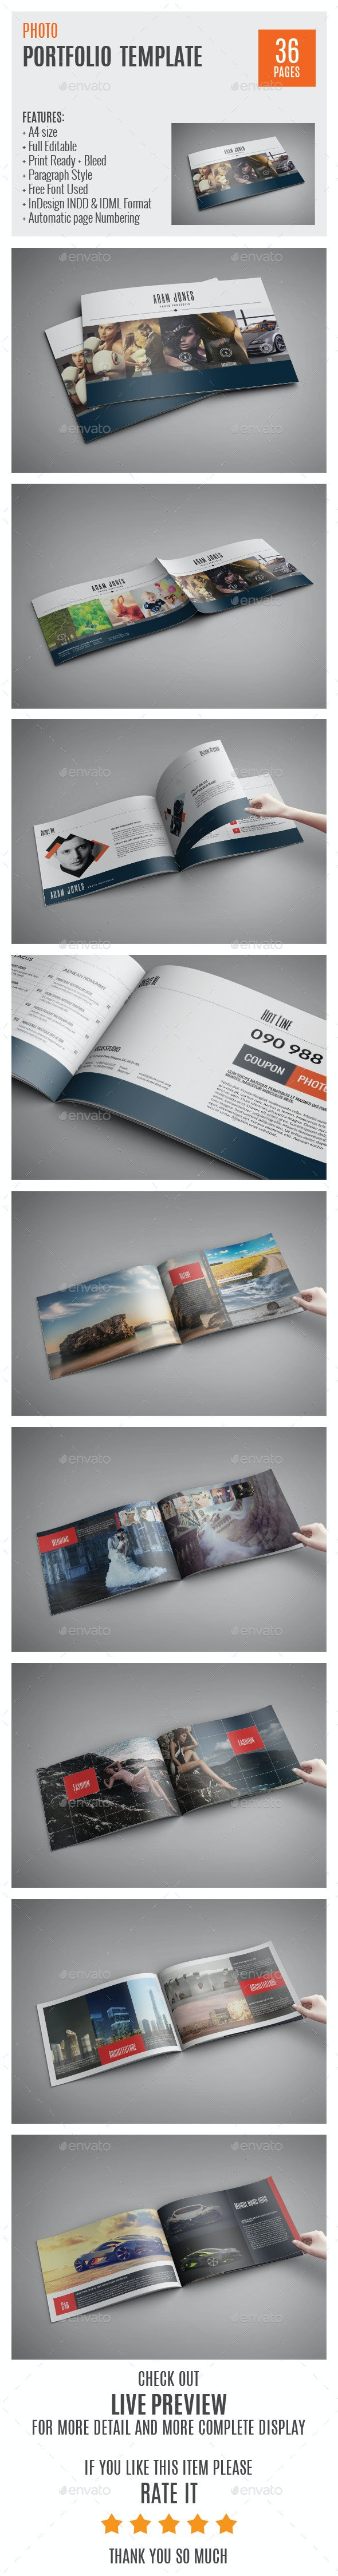 Photo Portfolio A4 InDesign Template 0010 - Portfolio Brochures